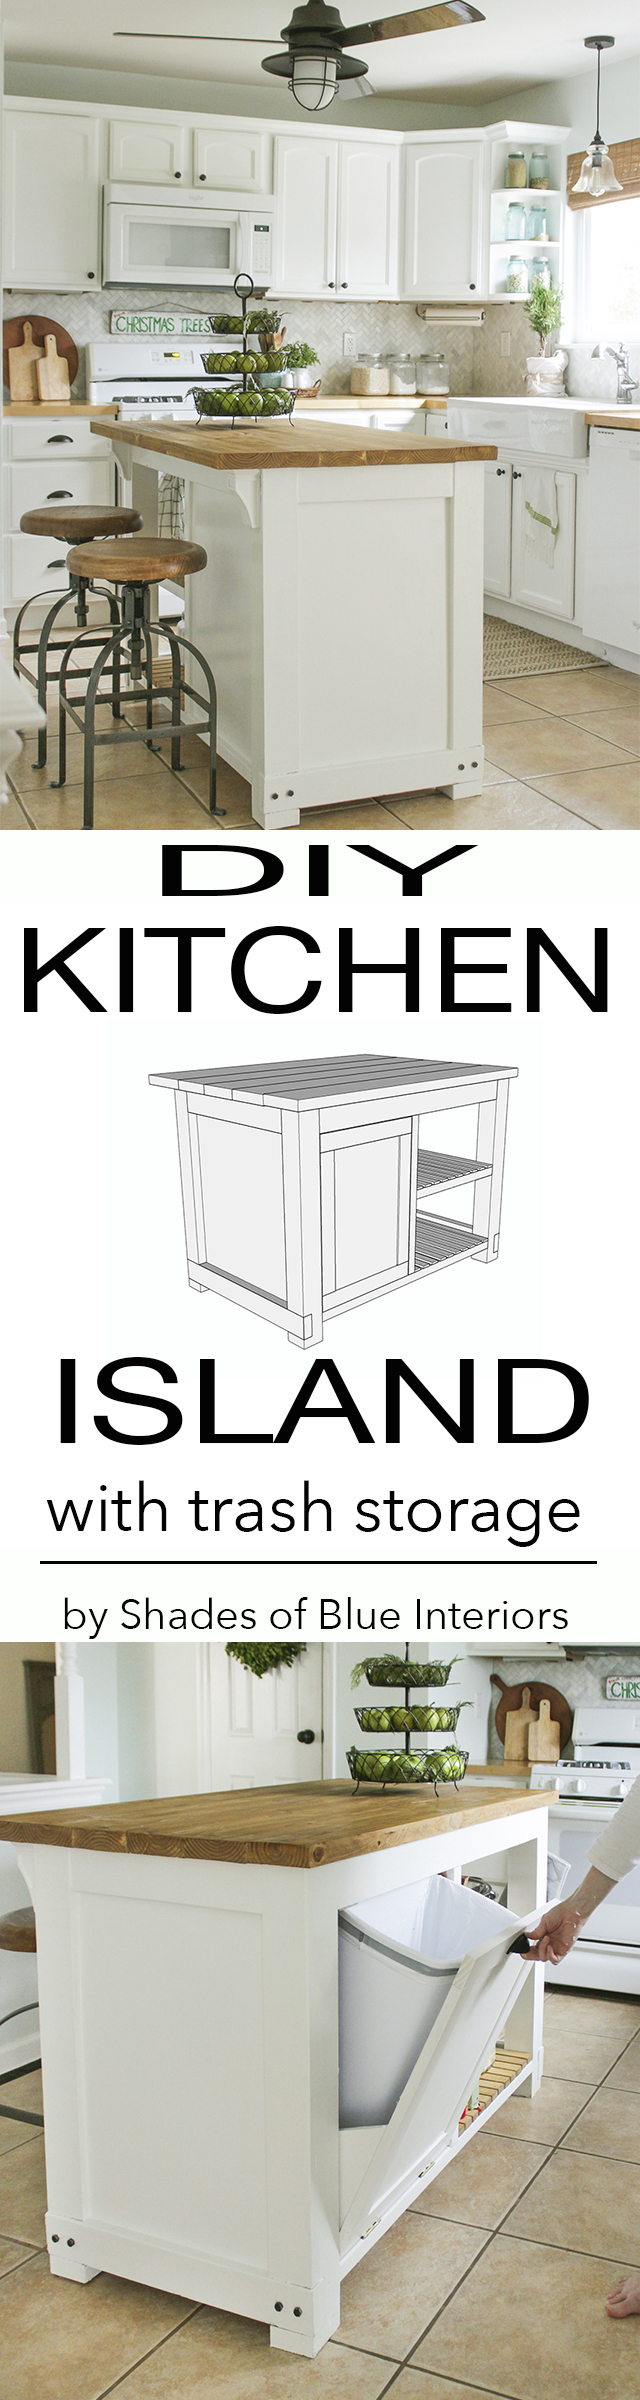 trash for pinterest home storage bins kitchen island pin with the